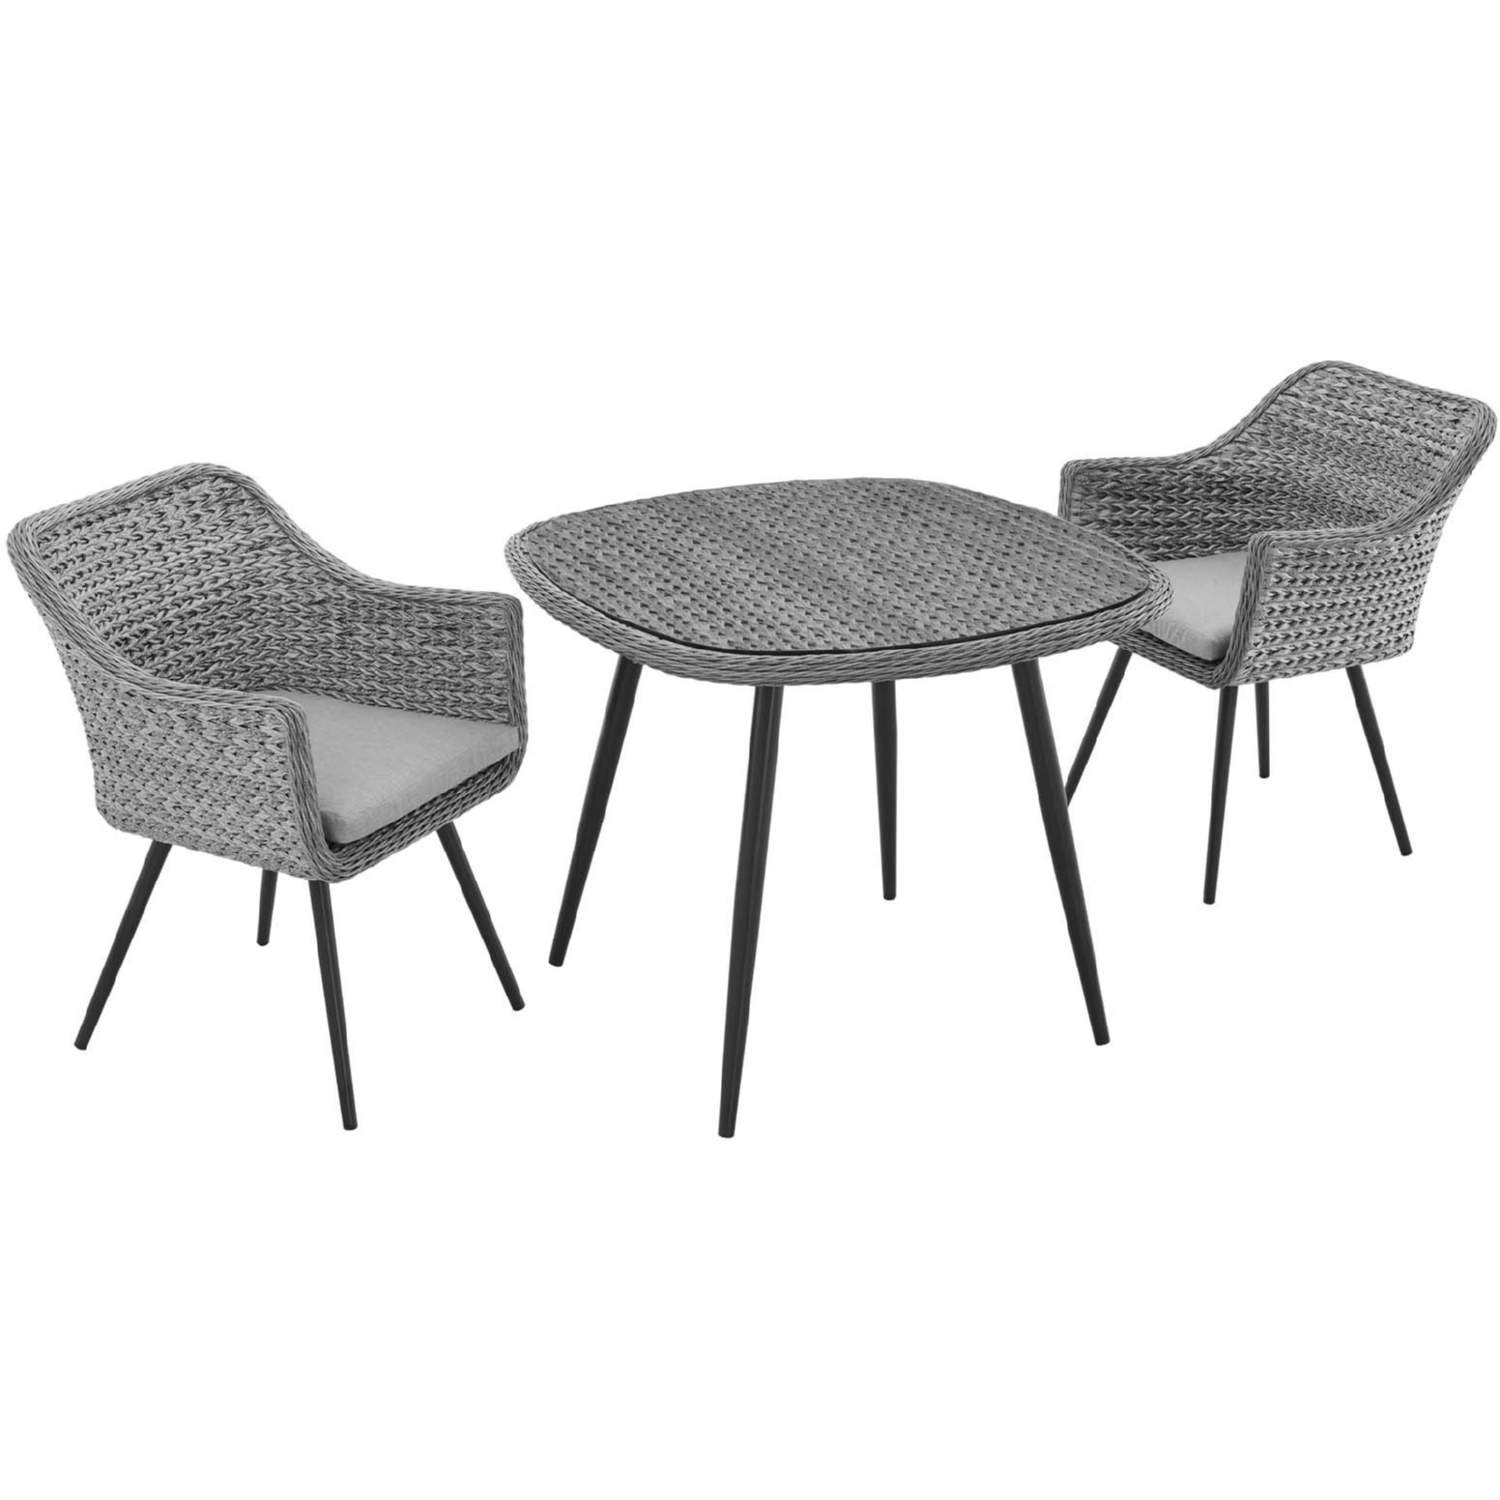 Modern 3-Piece Dining Set In Gray Rattan Weave - image-1